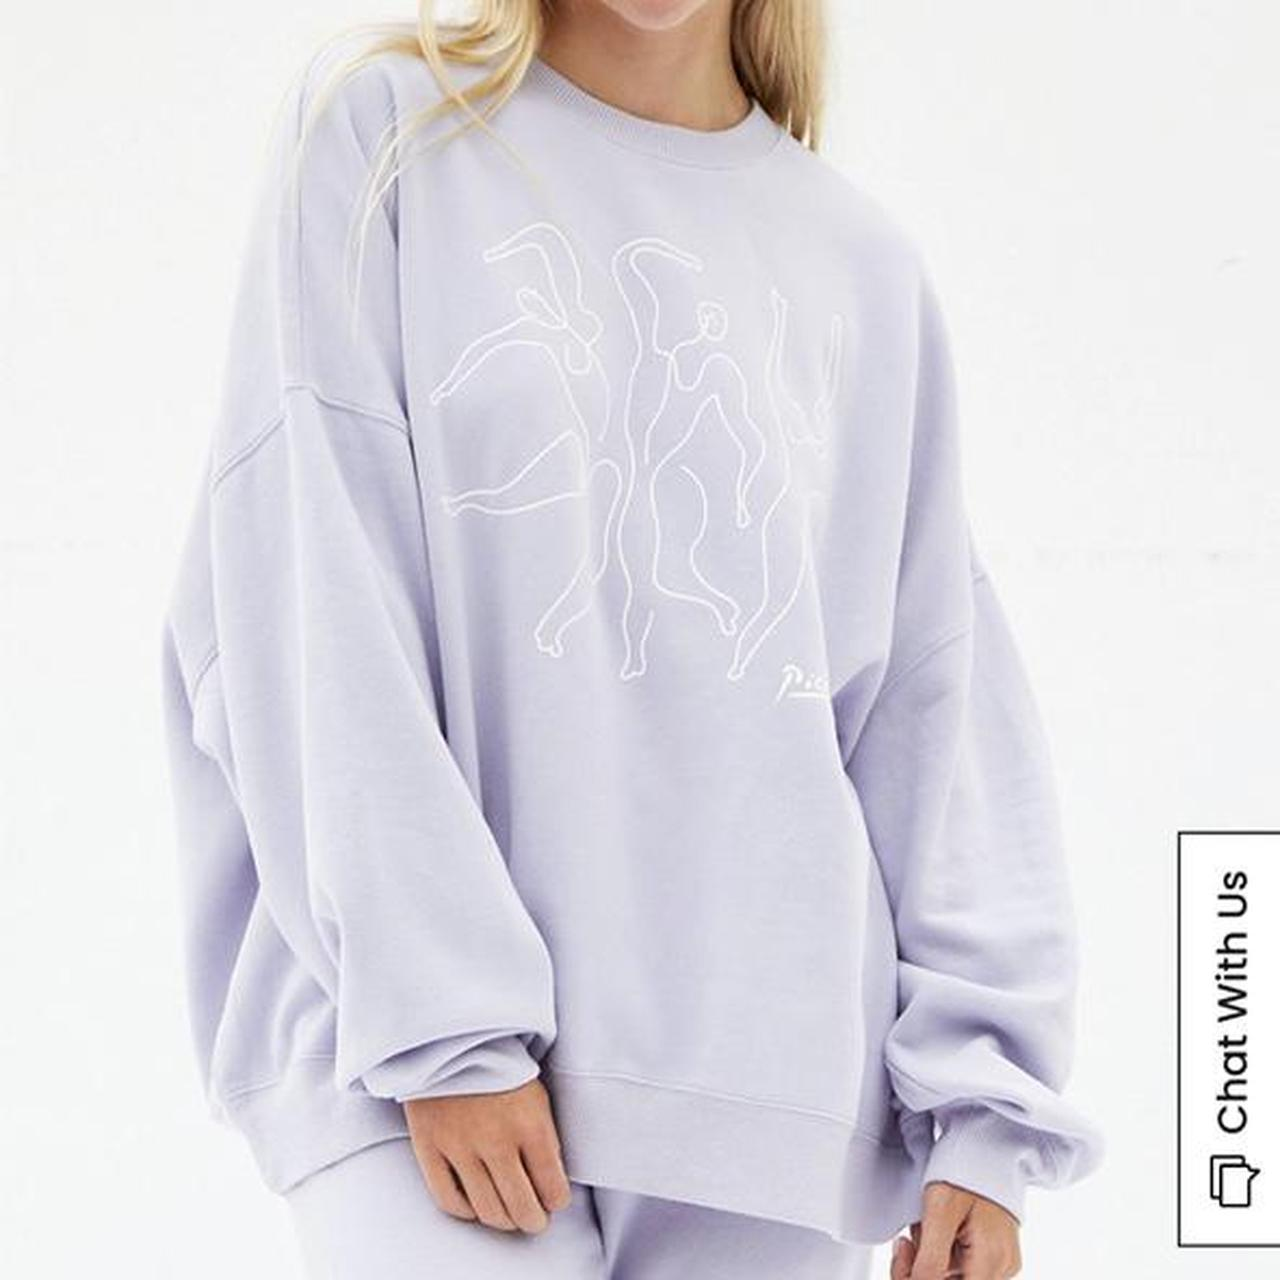 Product Image 1 - Picasso Ex-Boyfriend Sweatshirt from PacSun. oversized